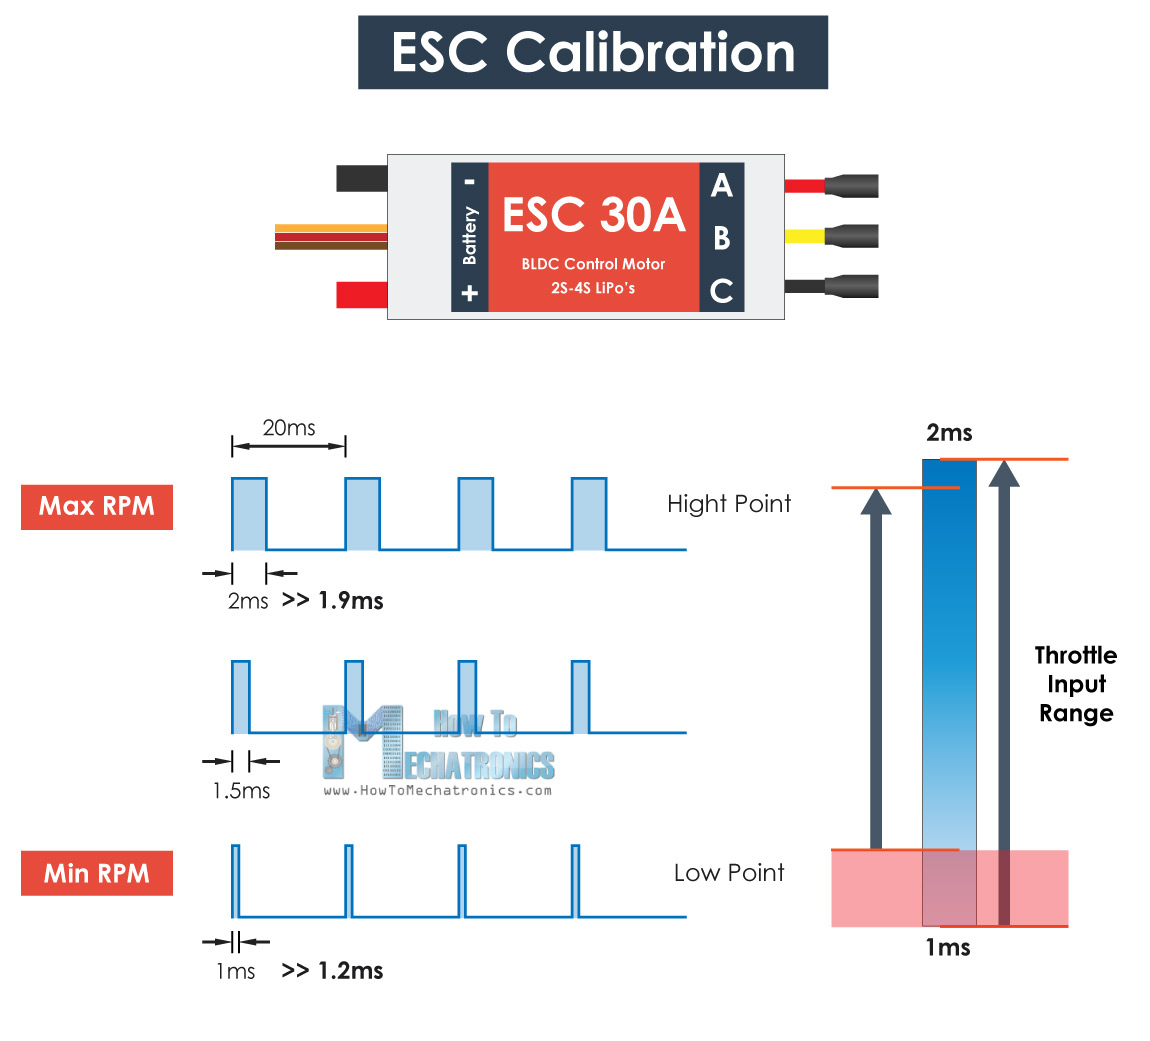 esc calibration - pulse width - high and low point adjustment